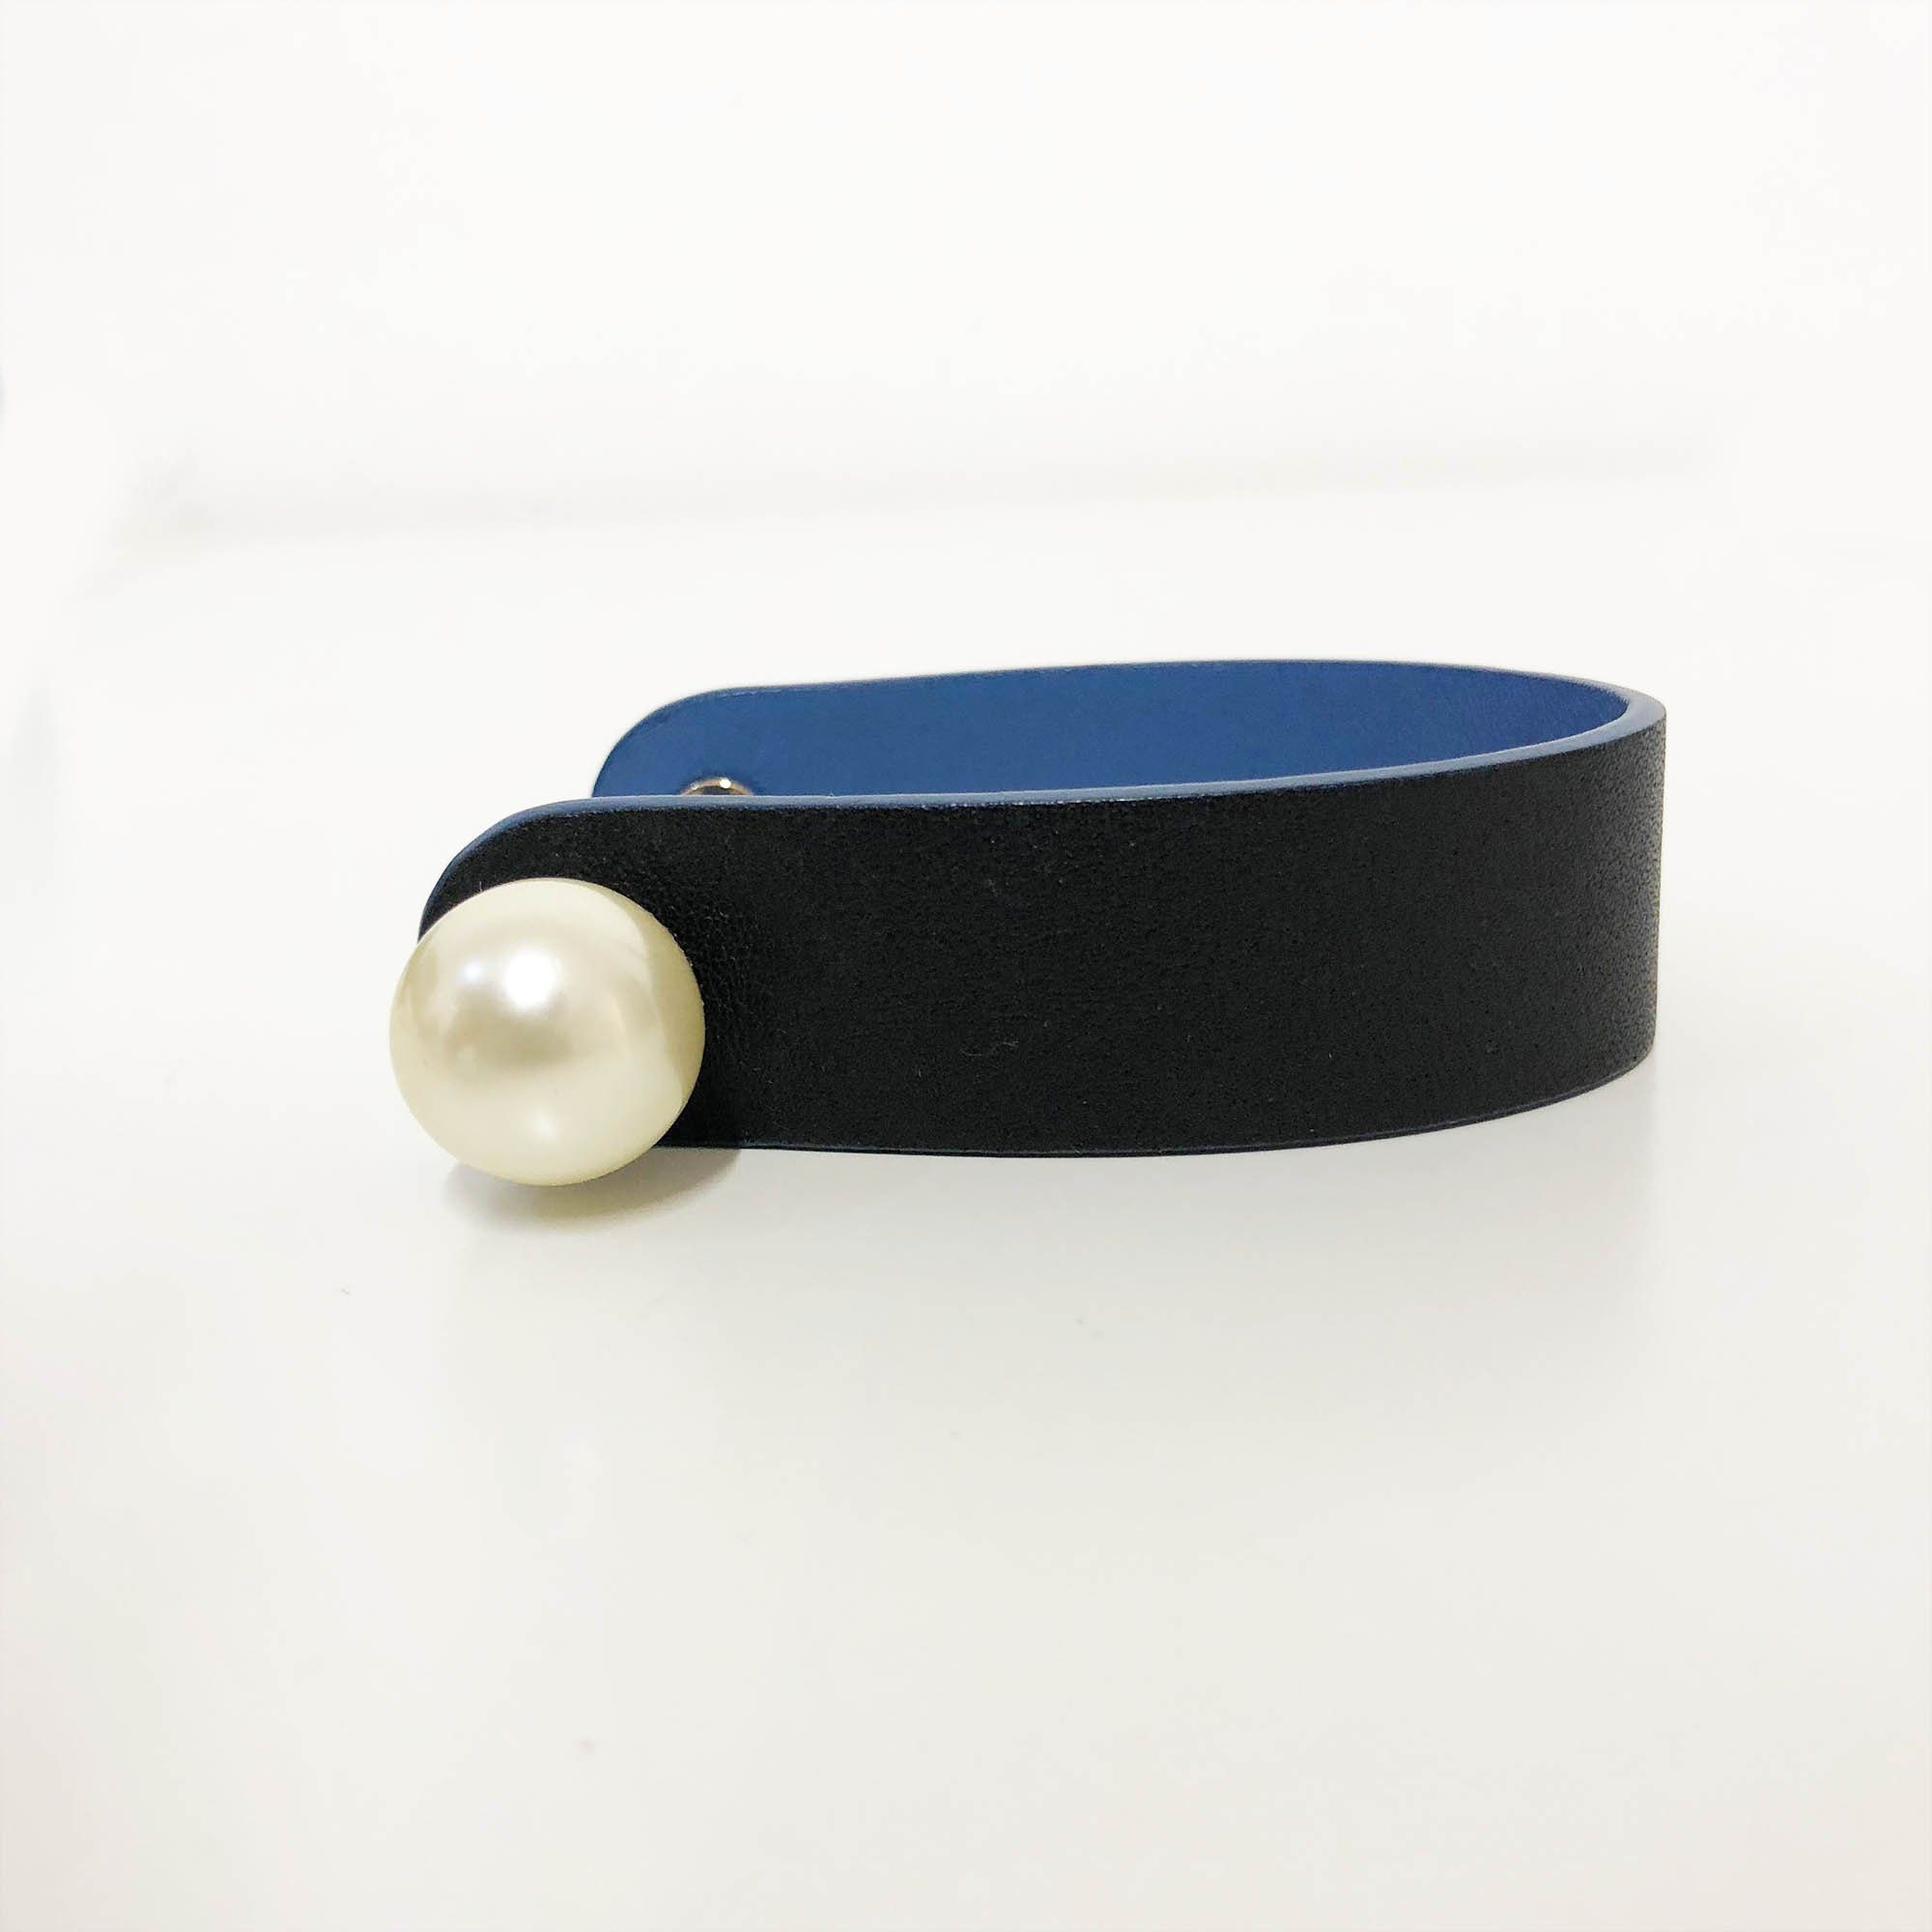 Christian Dior Perle Cuff in Navy Blue